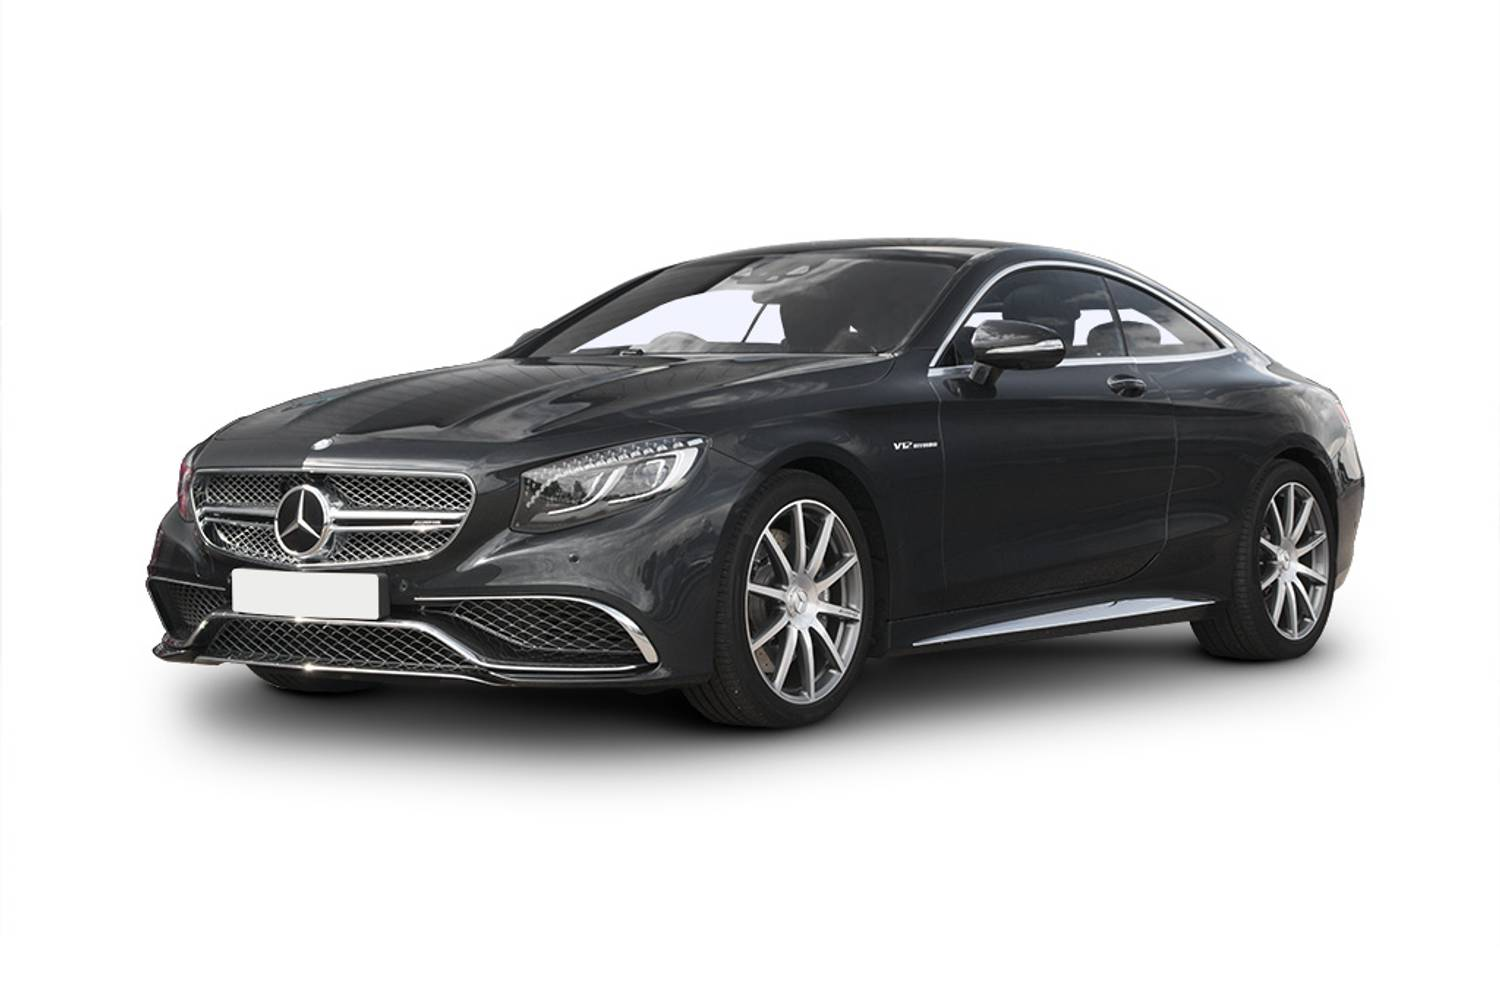 New Mercedes Benz S Class Amg Coupe S63 2 Door Auto 2014